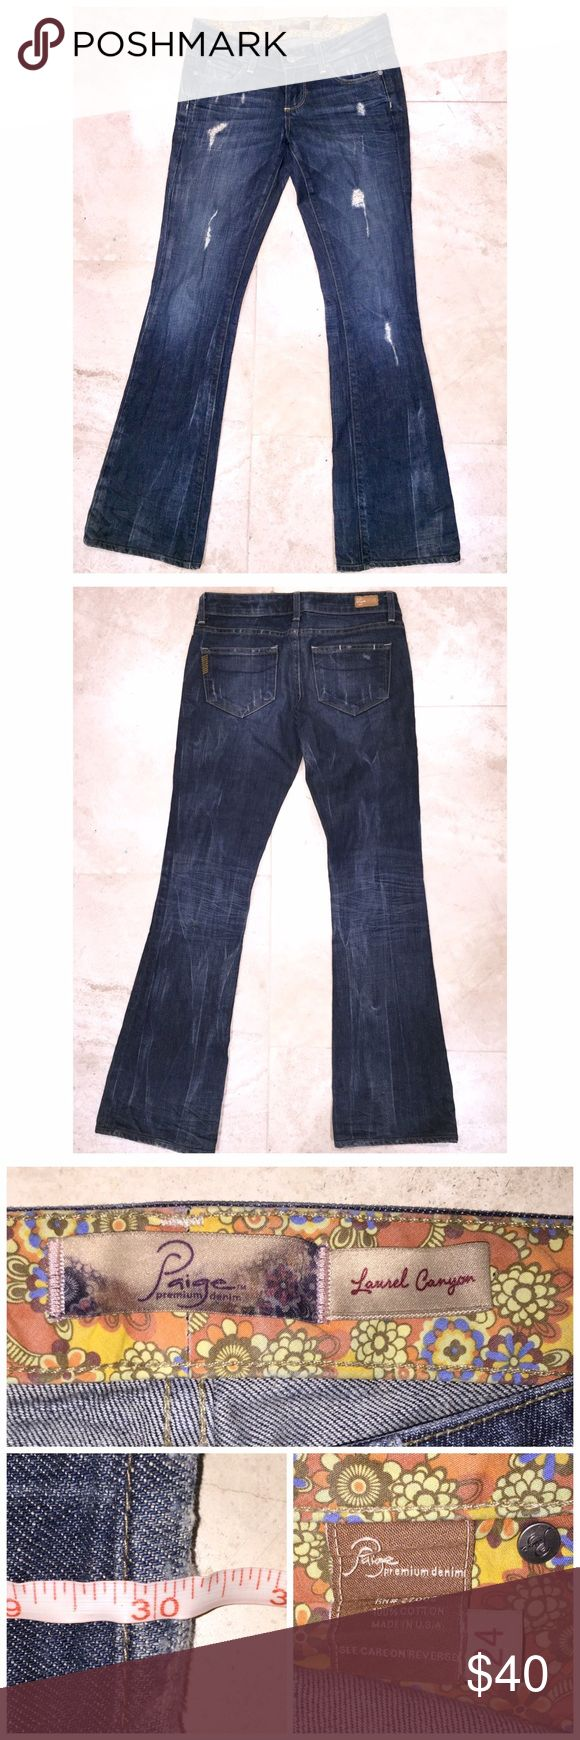 "💲⬇️Paige Jeans💲⬇️ Paige ""Laurel Canyon"" Jeans in size 24 with a 30"" inseam come in VERY GOOD condition. These destroyed boot cut jeans are a mid rise with manufactured distress in all of the perfect places. Light fraying at the hems but in otherwise EXCELLET condition! My prices fluctuate from time to time. Catch items when the prices are low!❤️ Paige Jeans Jeans Boot Cut"